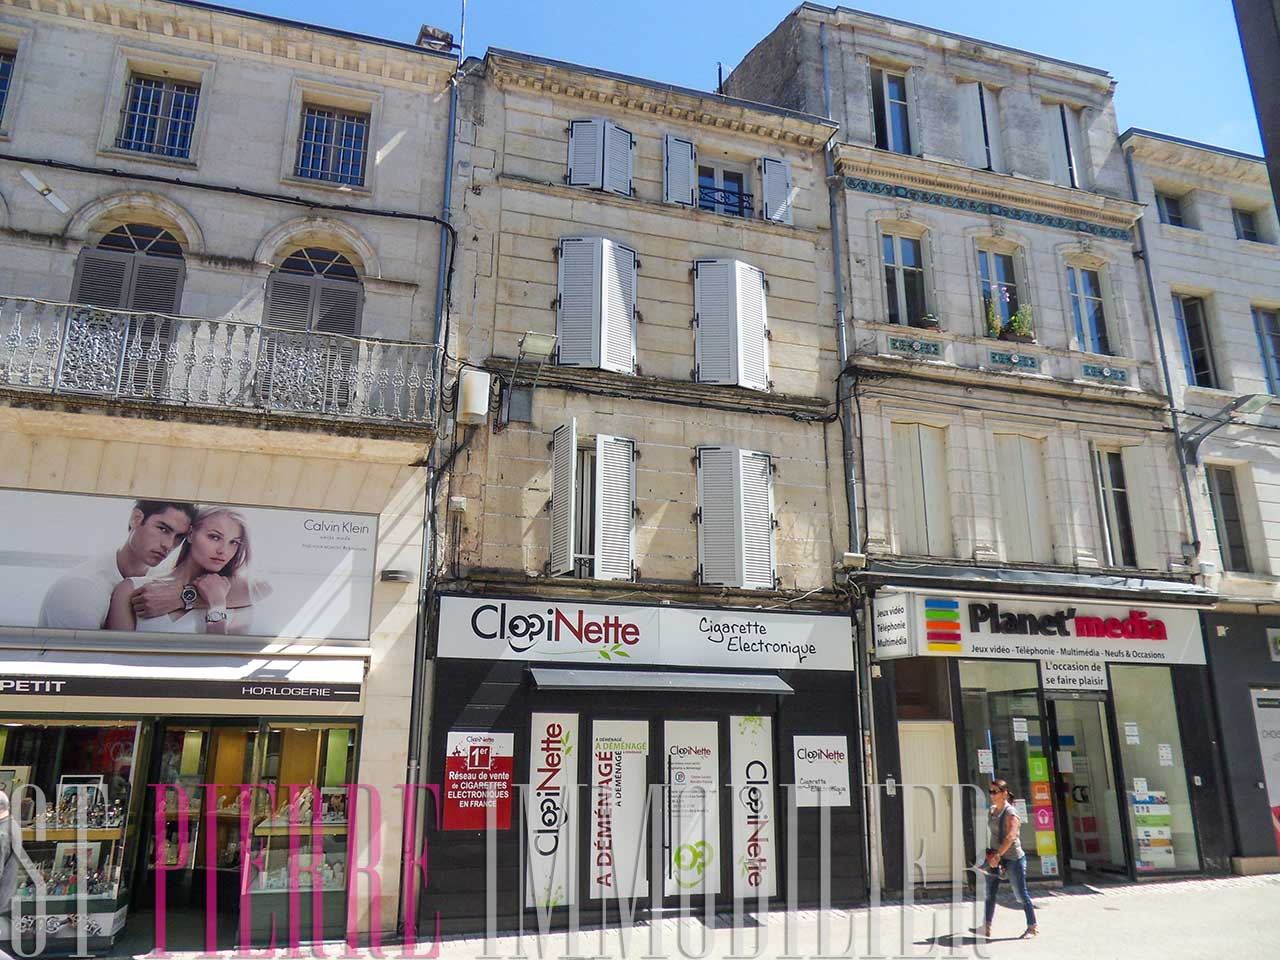 louer local commercial rue ricard niort emplacement n 1 st pierre immobilier niort. Black Bedroom Furniture Sets. Home Design Ideas